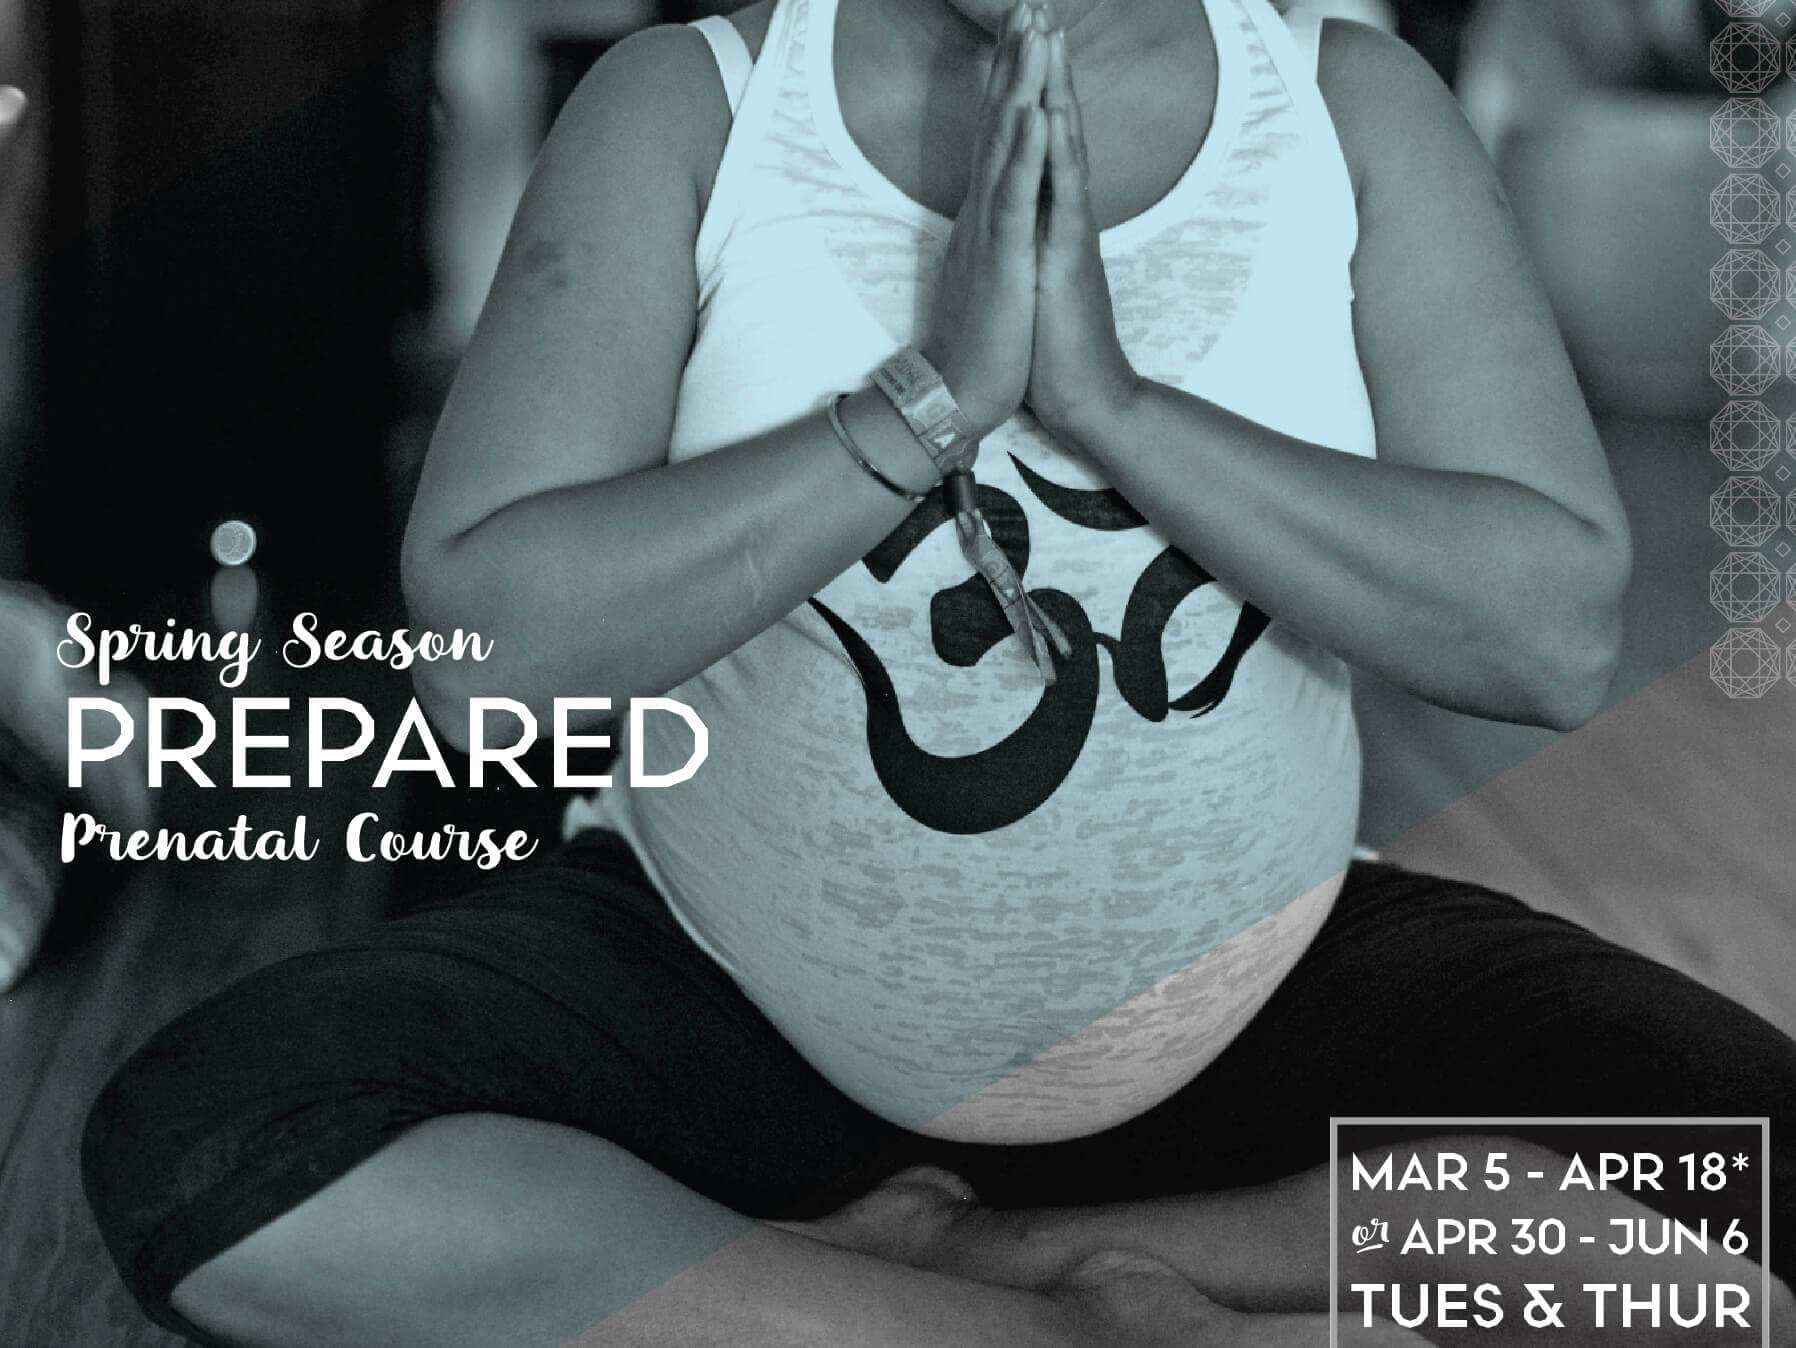 PREPARED: A New Prenatal Course